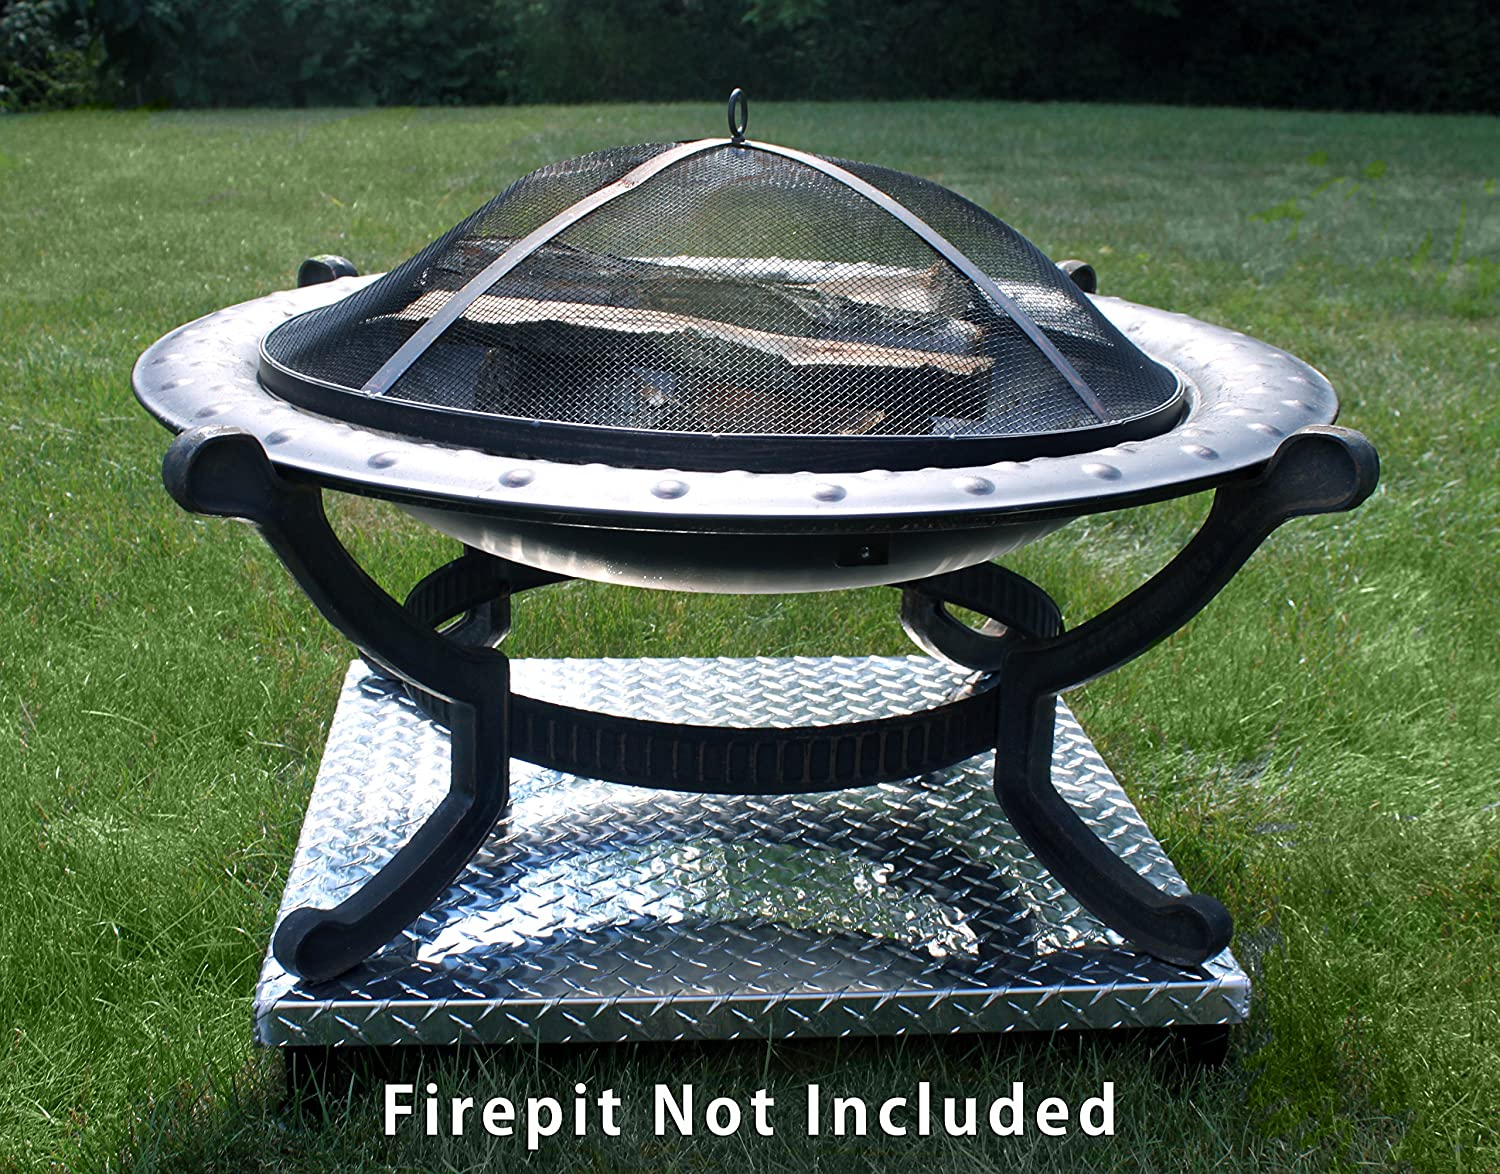 Can I Use A Fire Pit On My Deck Outdoor Fire Pits Fireplaces Grills